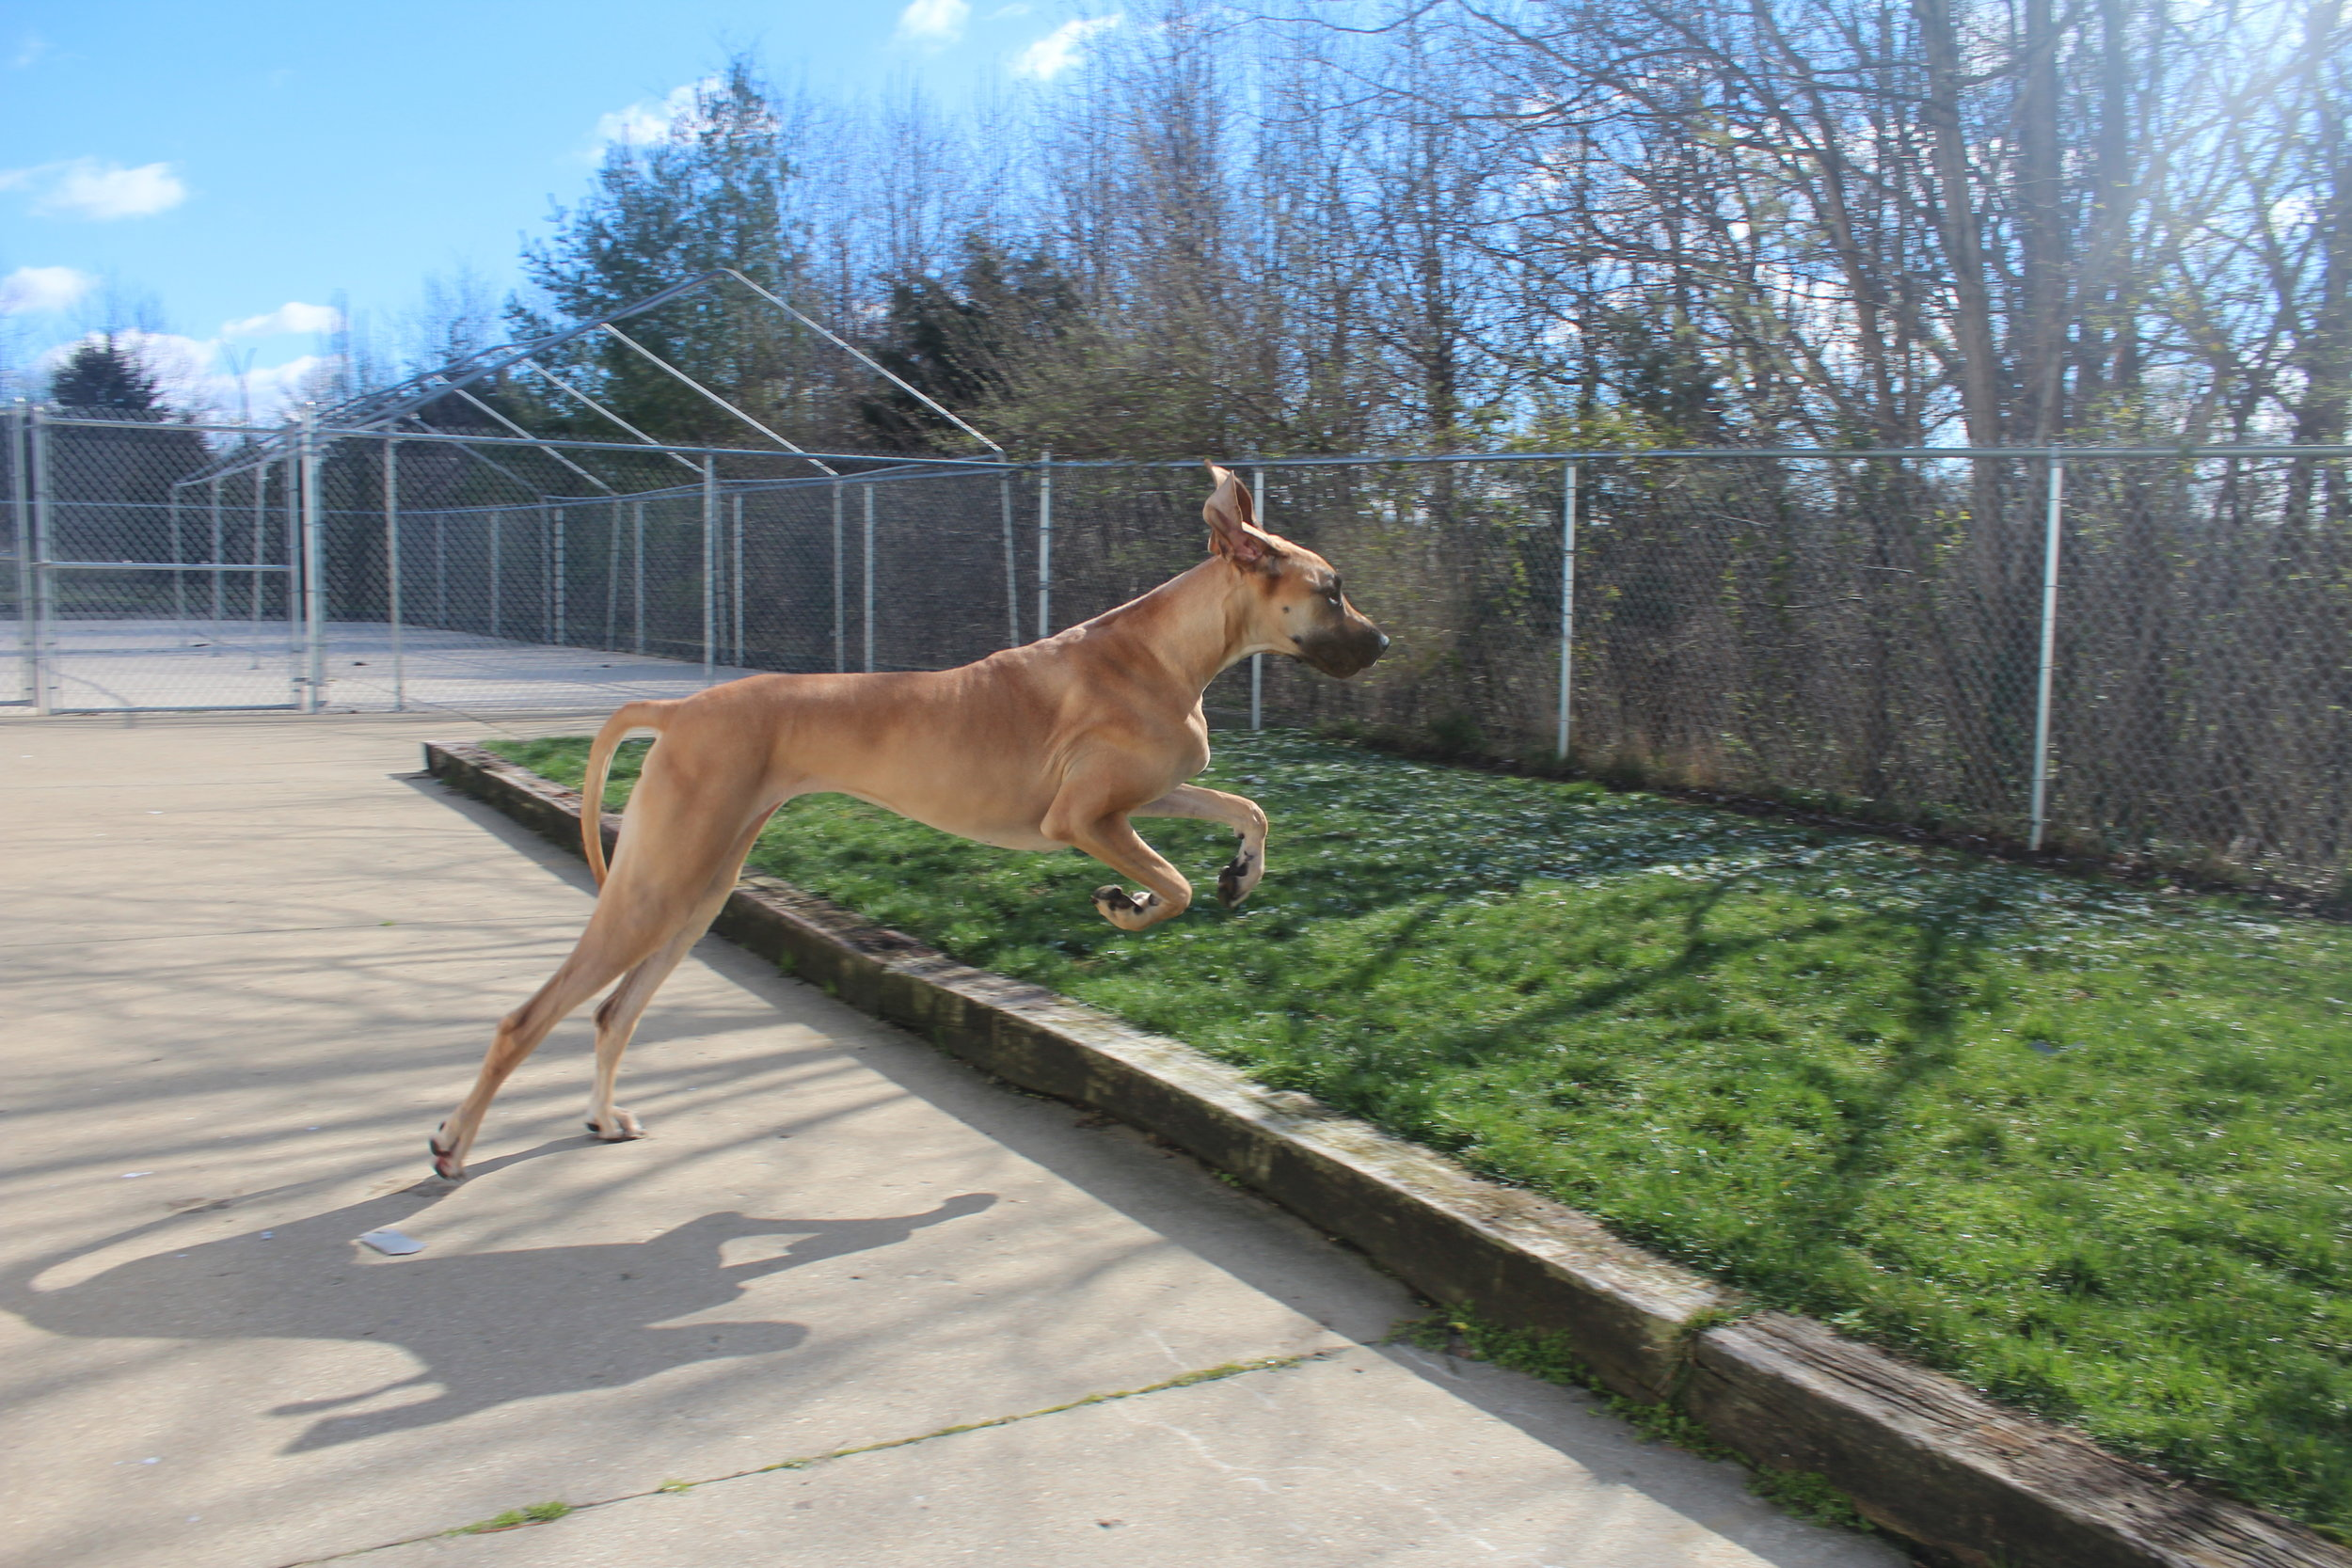 Pet Nation Lodge has four outdoor play areas for boarding and daycare dogs. Each yard is at least 4,000 sq ft so your dog can use up a lot of their energy running around and playing.